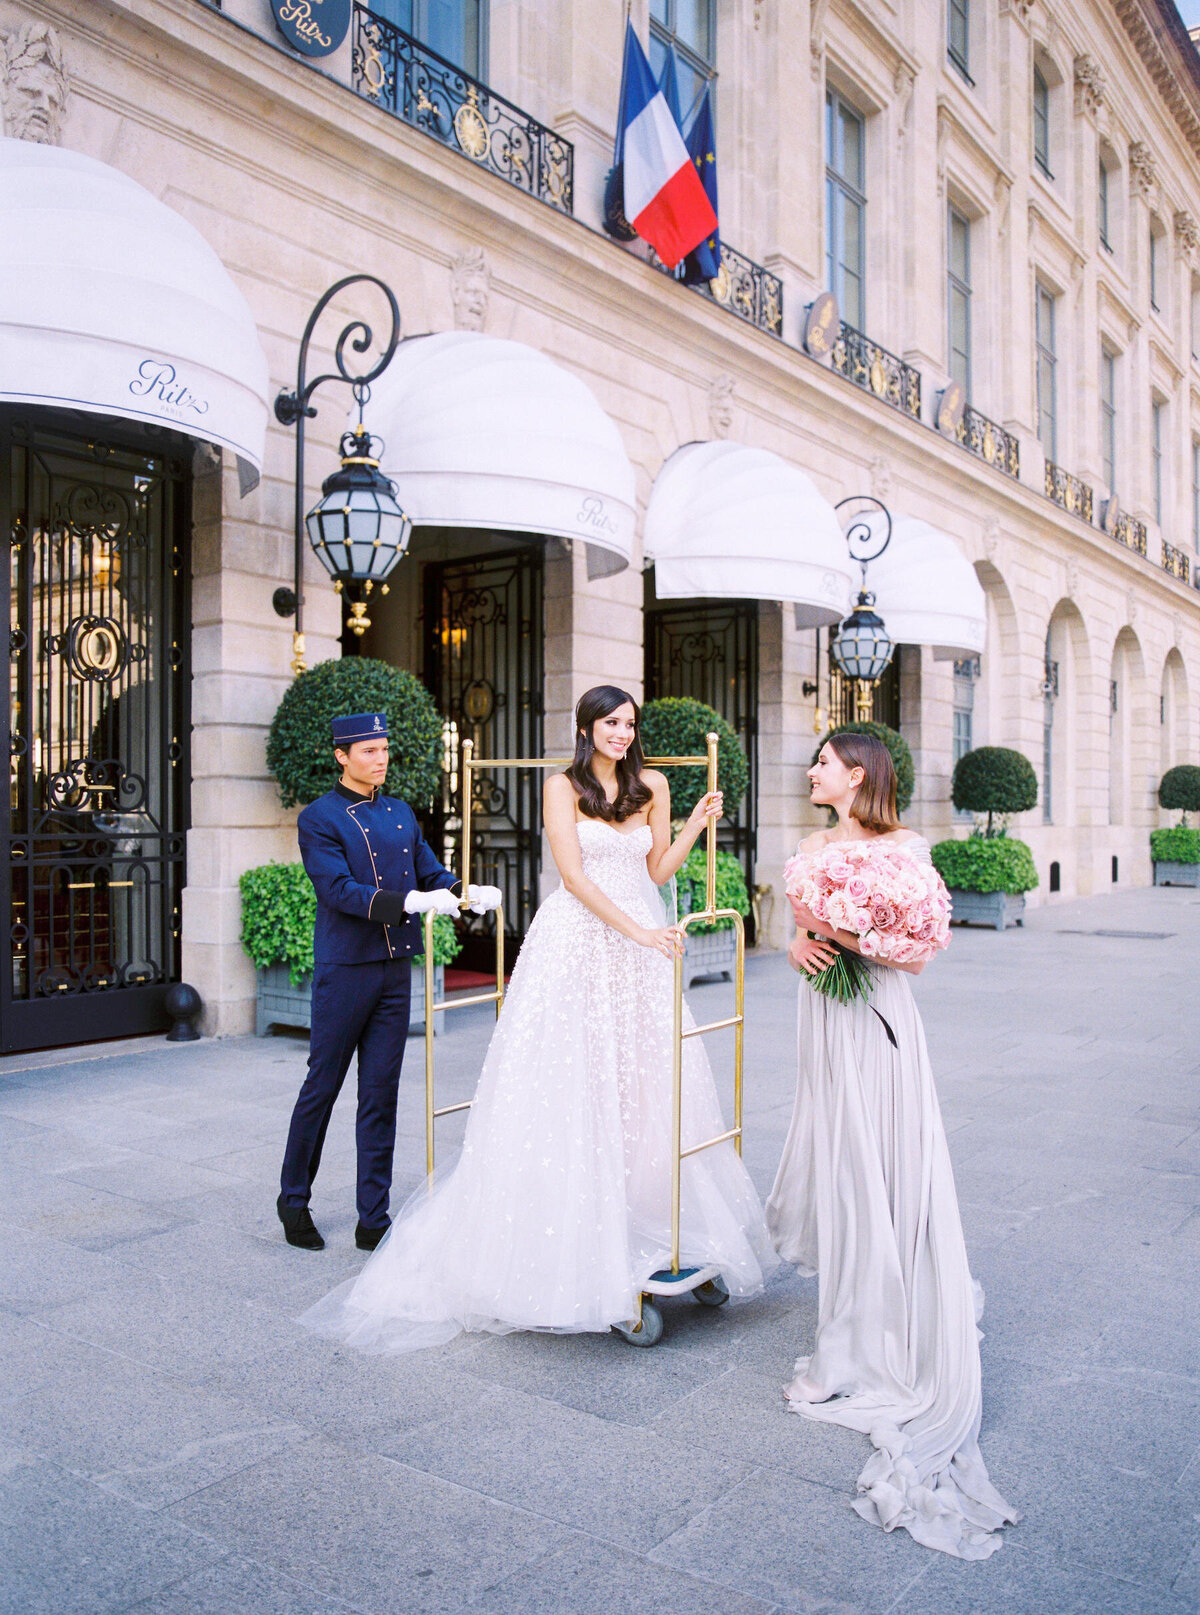 wedding-photographer-in-ritz-paris (17 of 29)